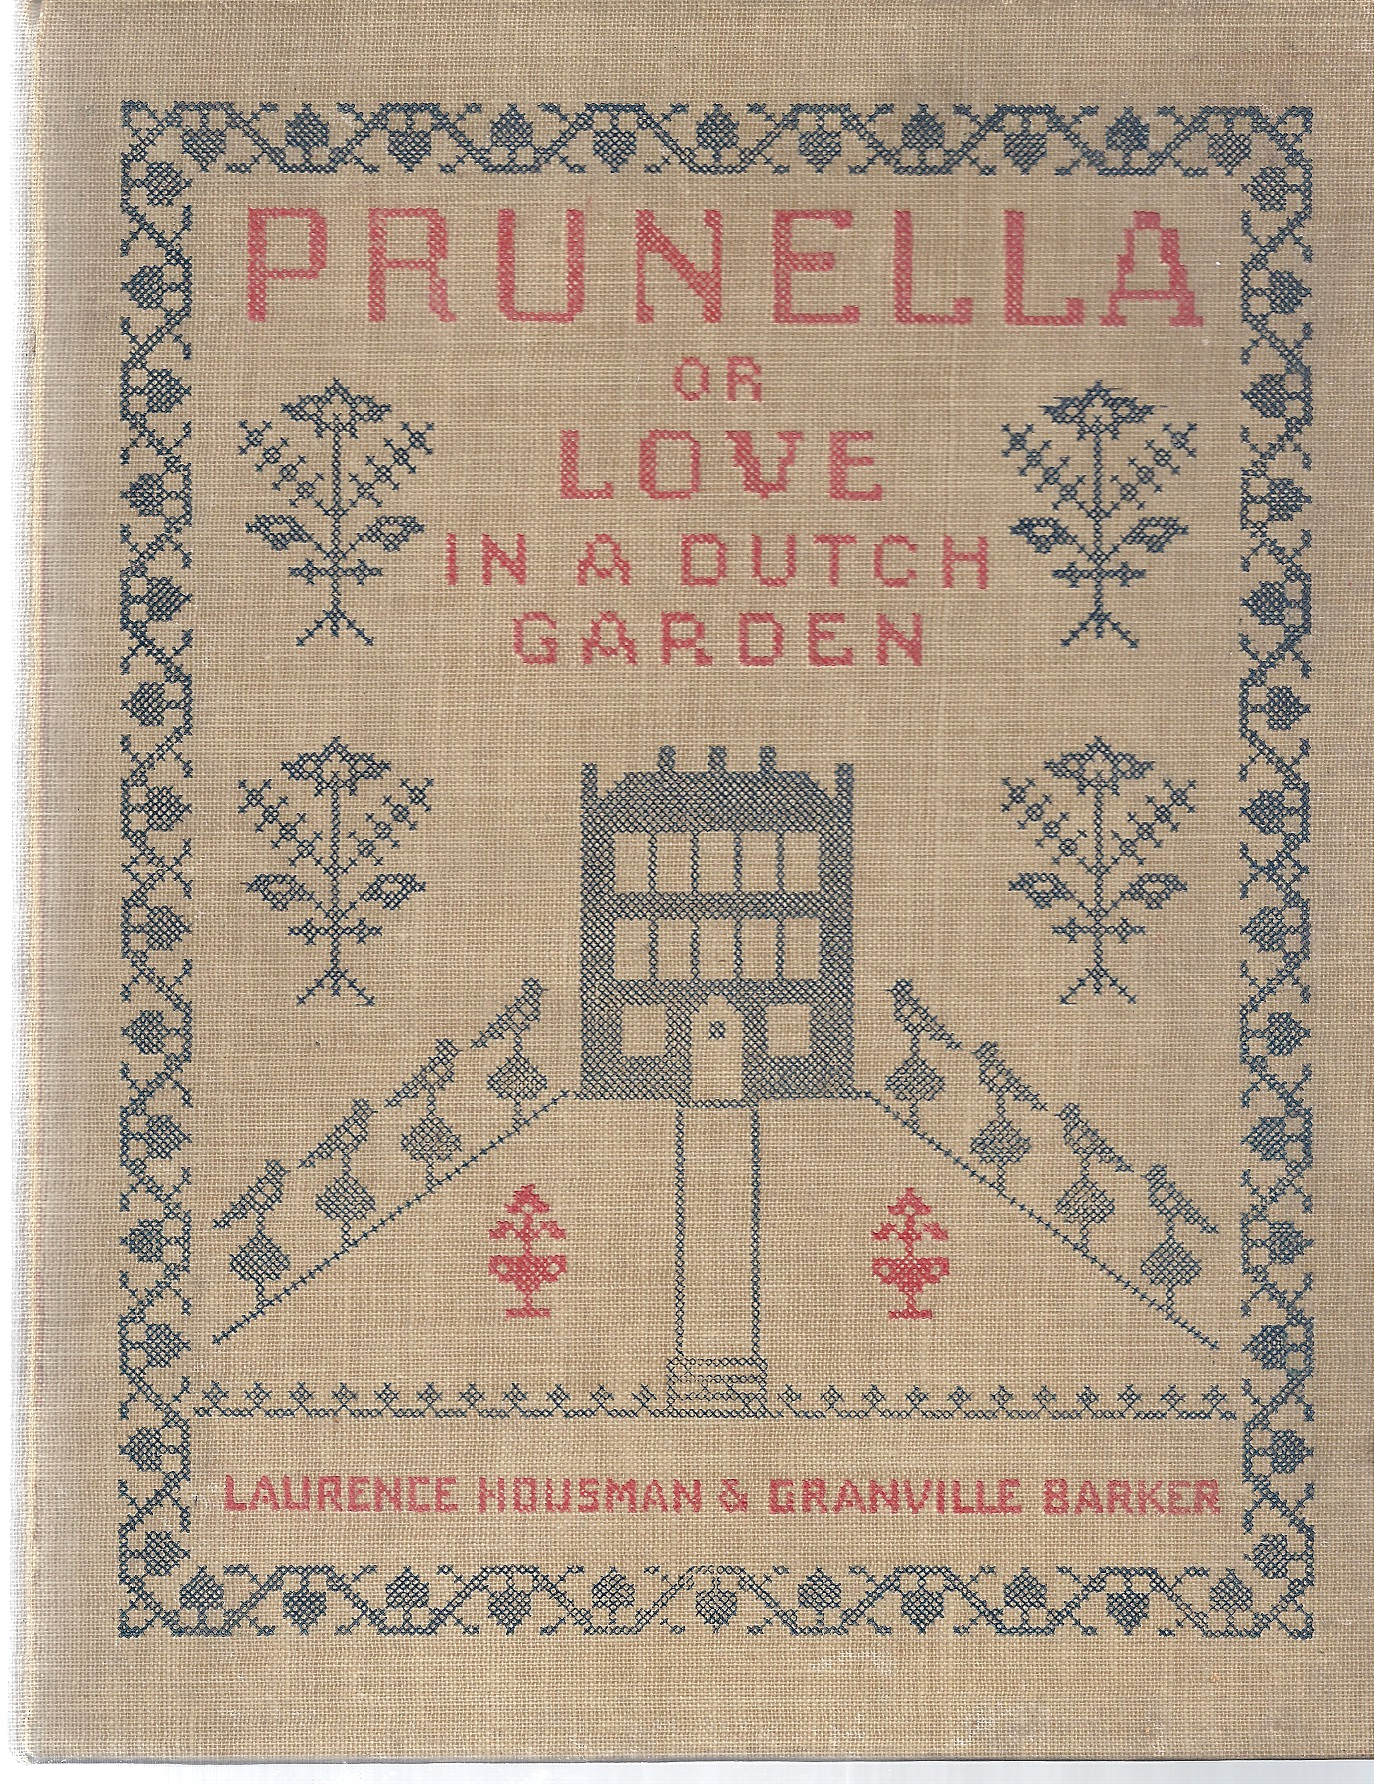 Image for Prunella, or Love in a Dutch Garden